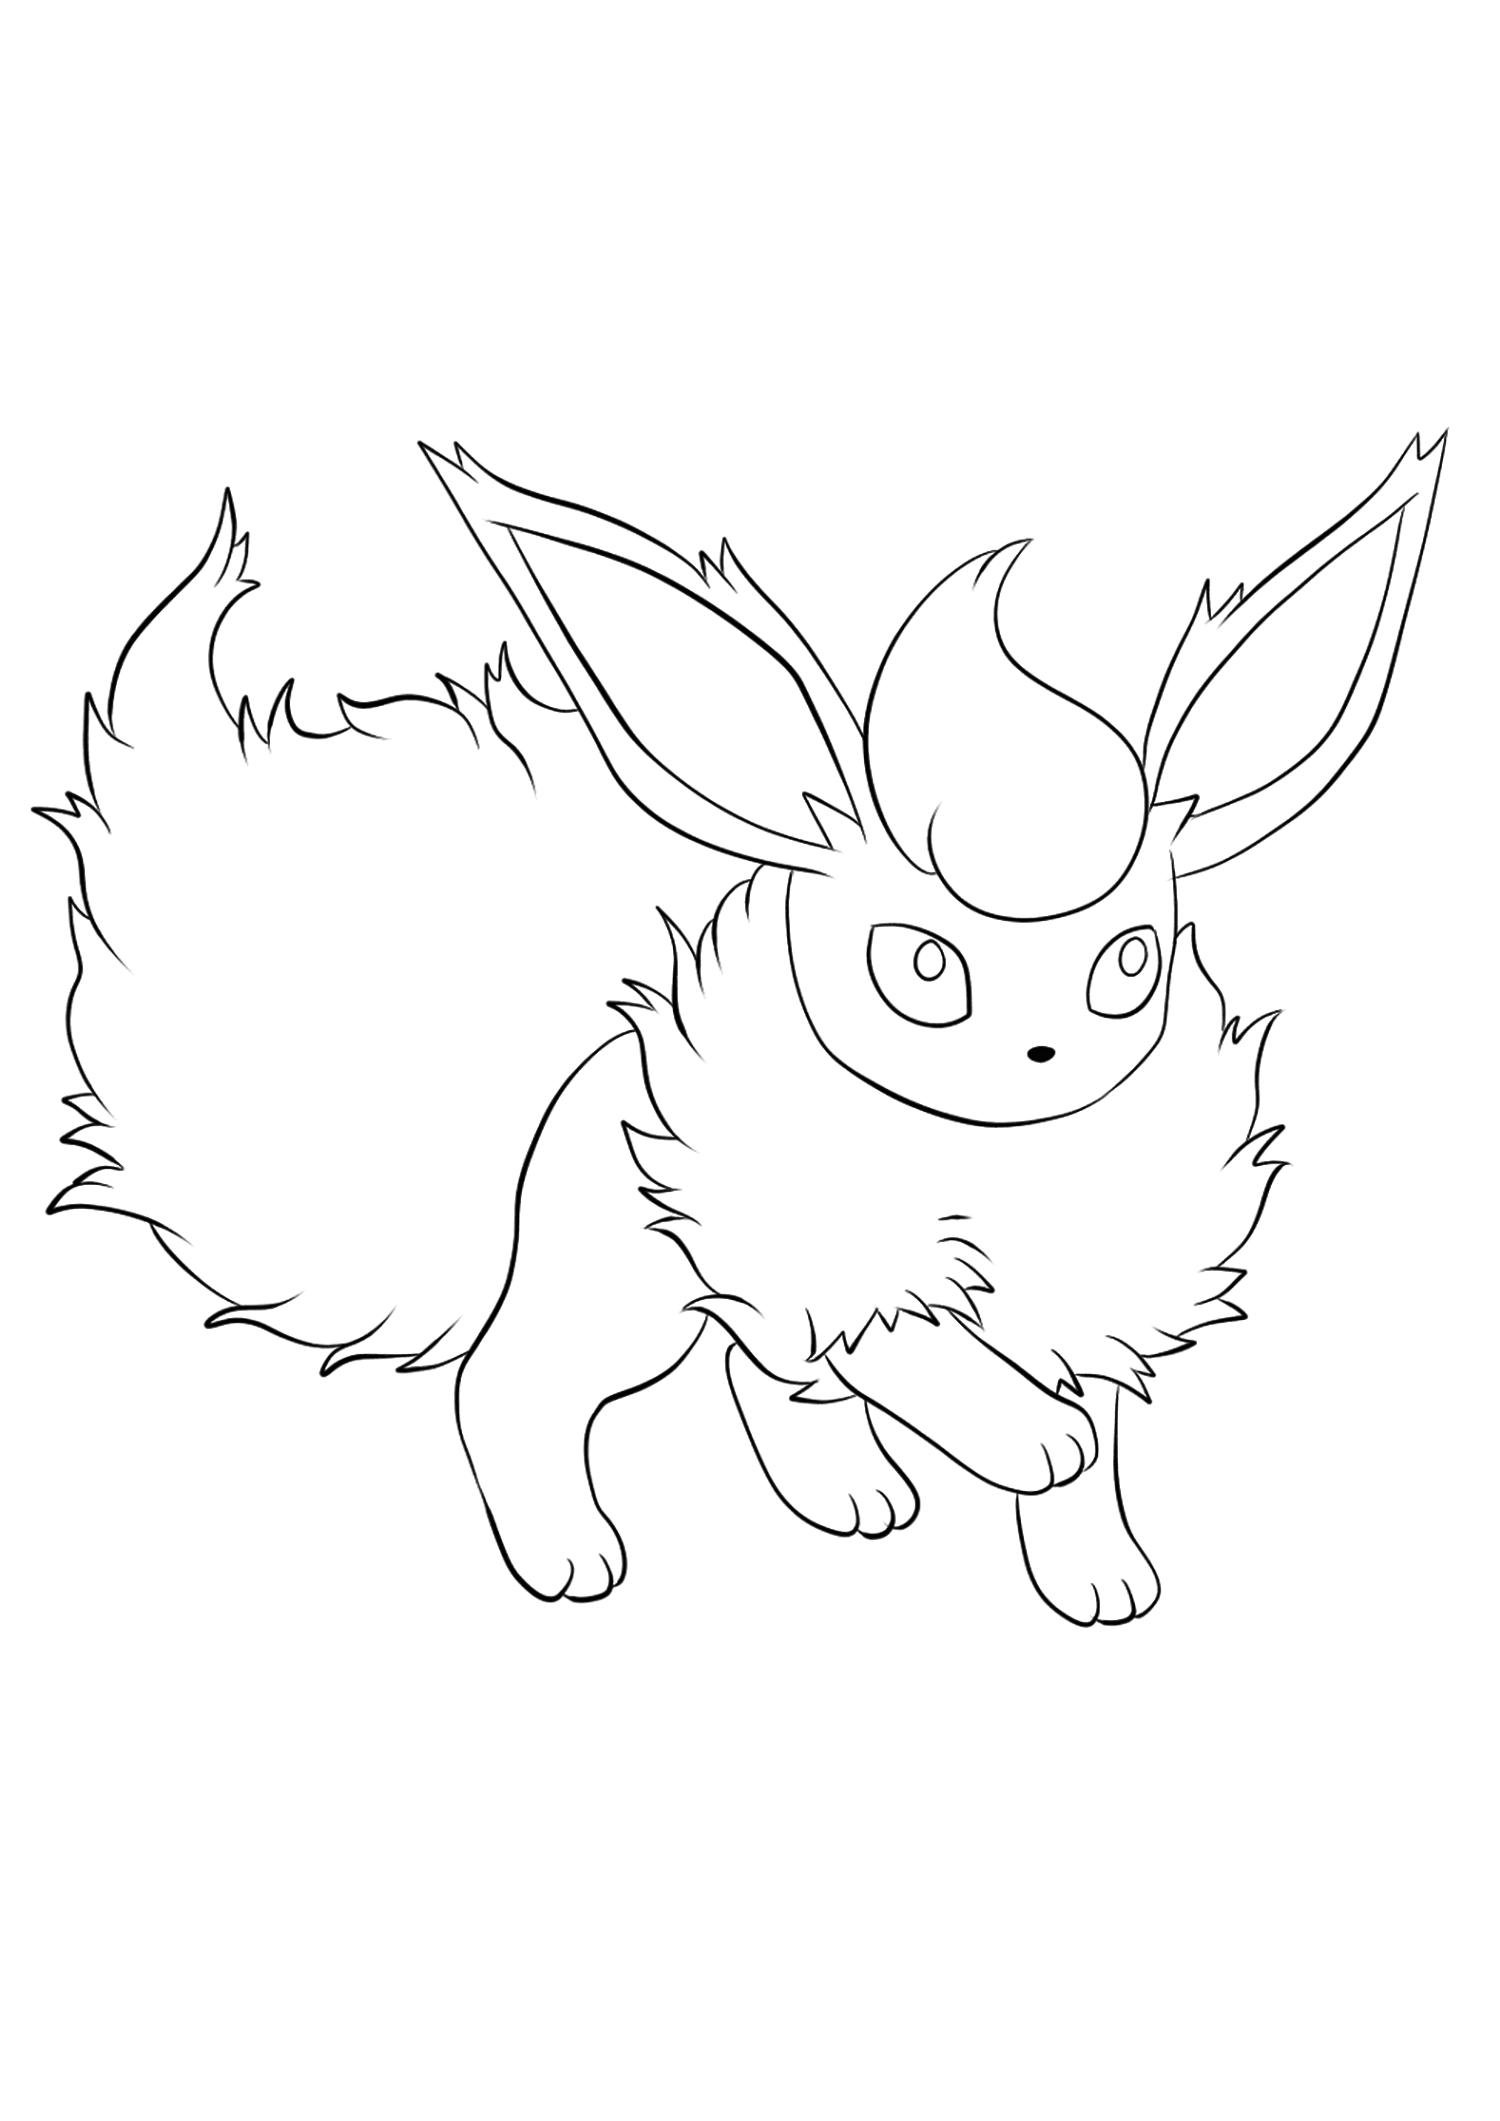 Pyroli (No.136)Coloriage de Pyroli (Flareon), Pokémon de Génération I, de type : FeuOriginal image credit: Pokemon linearts by Lilly Gerbil on Deviantart.Permission:  All rights reserved © Pokemon company and Ken Sugimori.